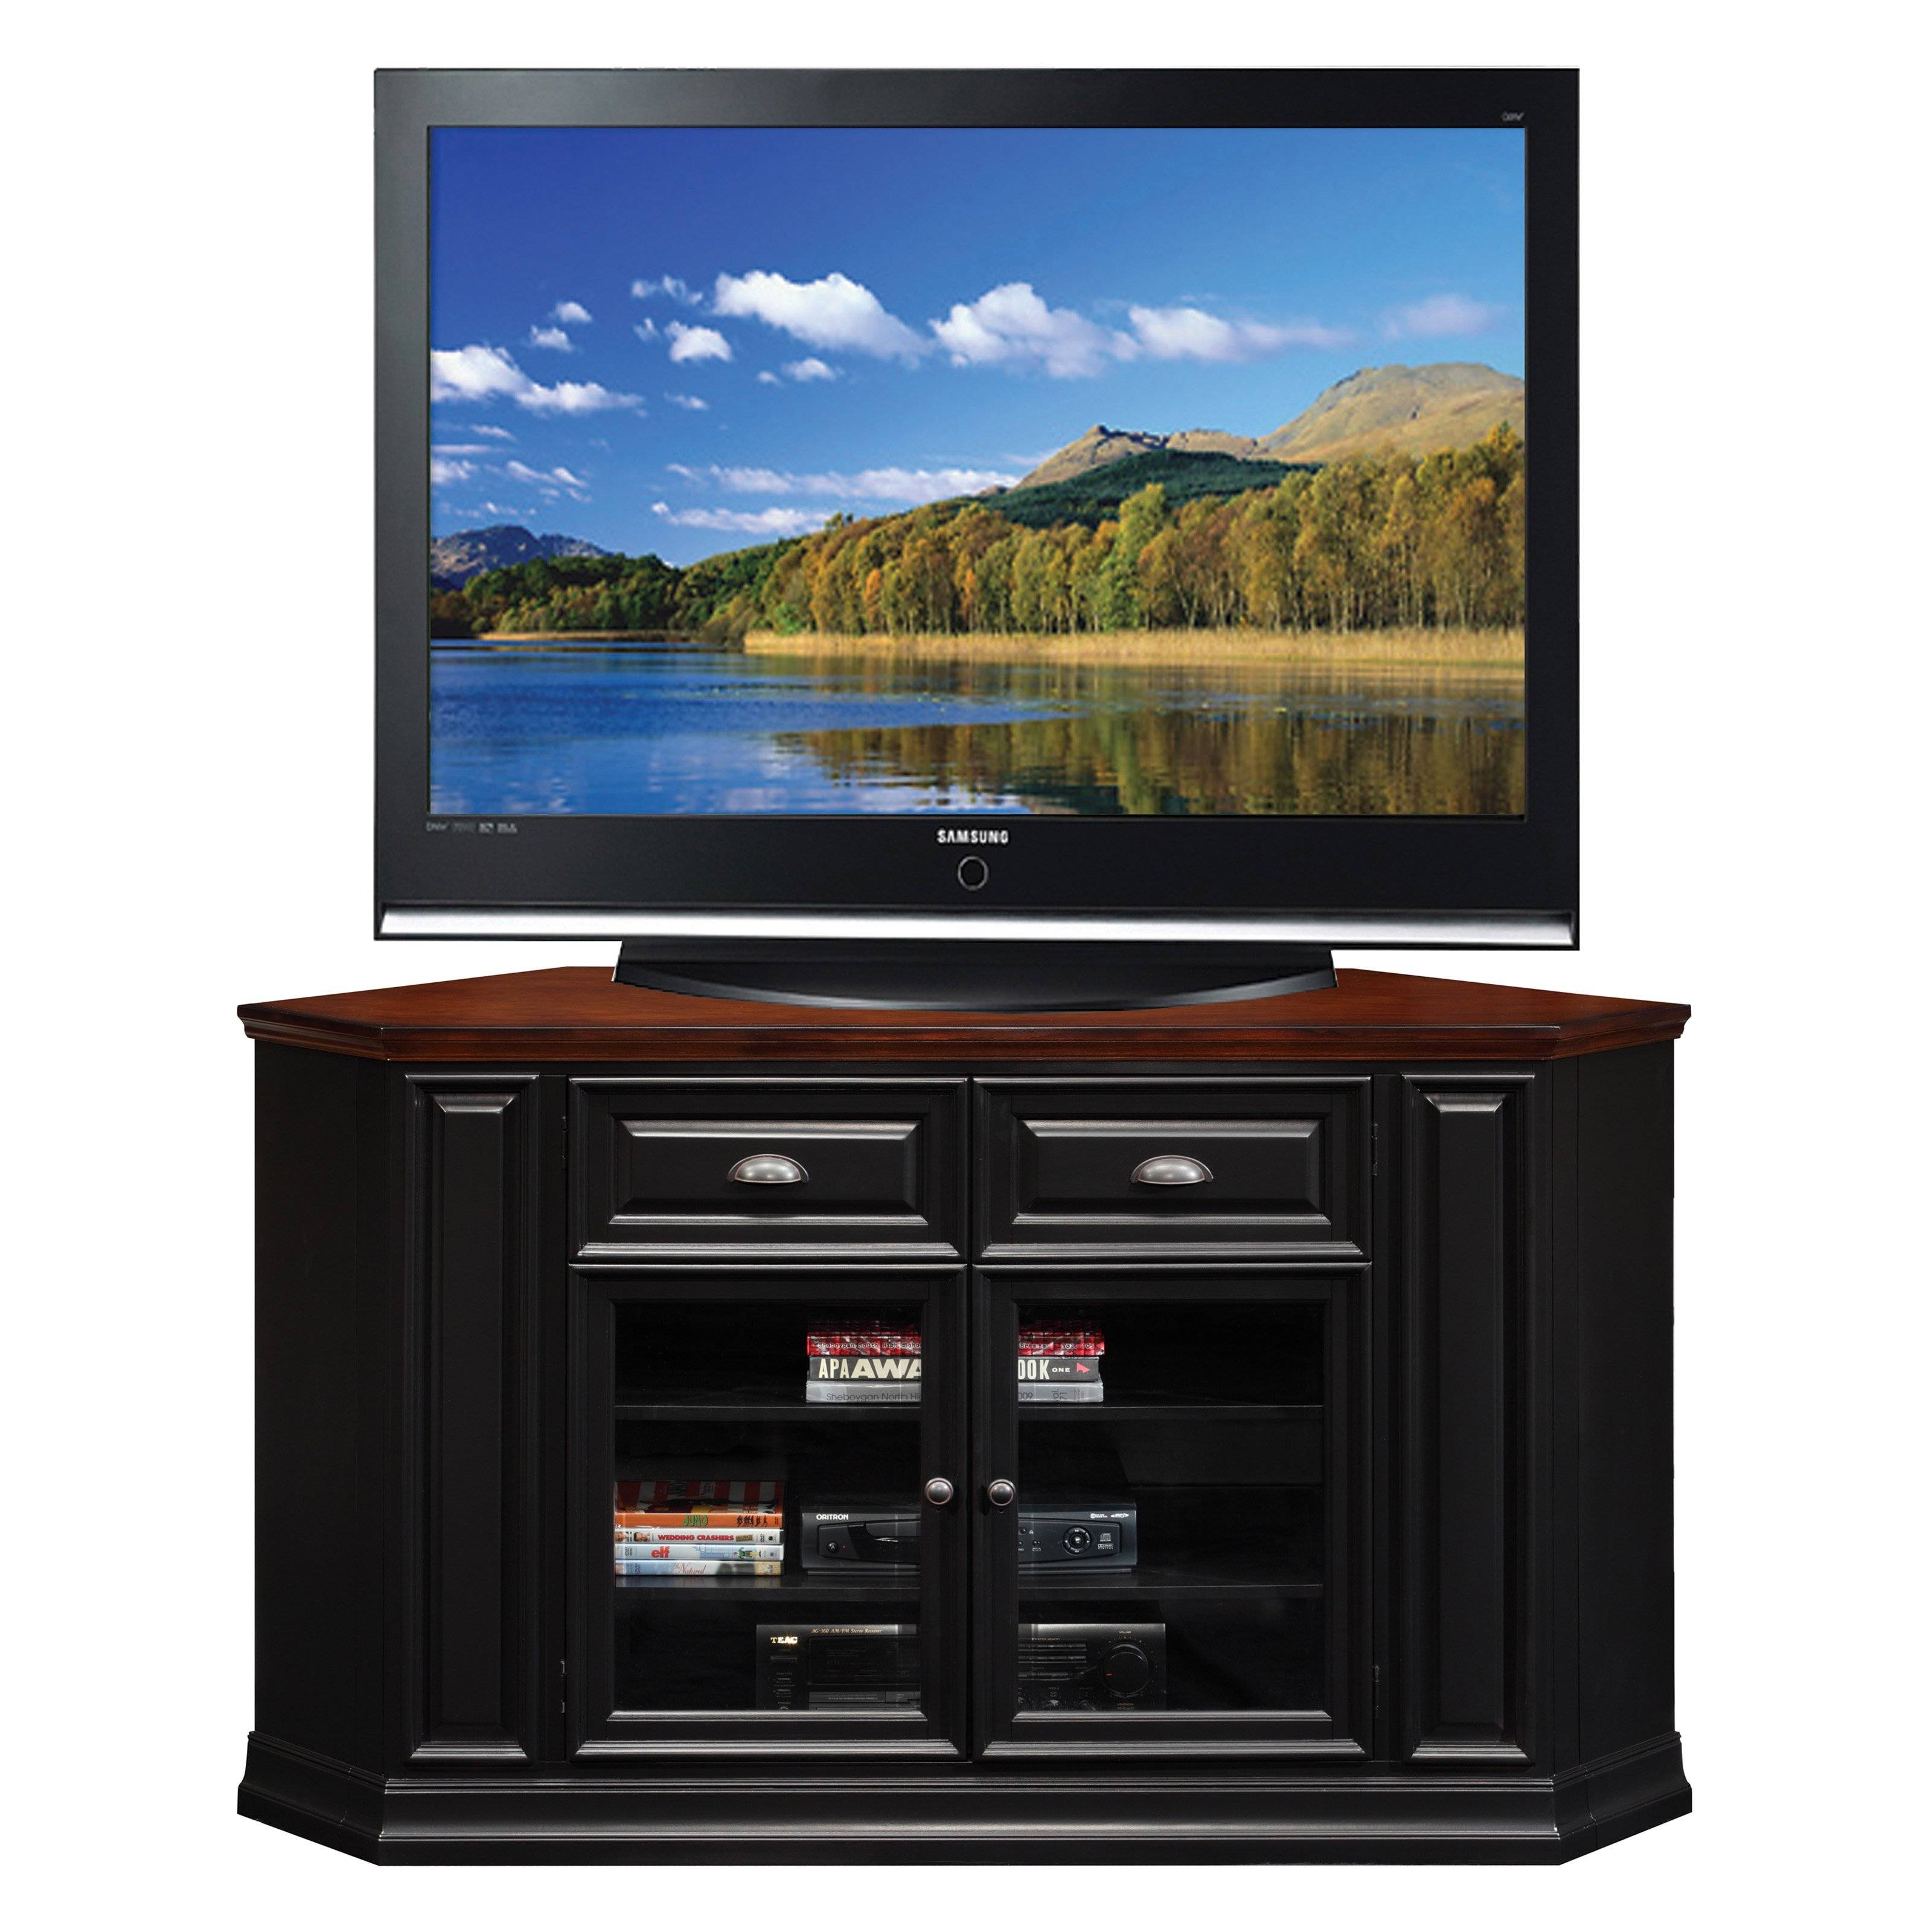 Leick 46 In. Corner Tv Stand - Black | Hayneedle with regard to Black Corner Tv Cabinets (Image 8 of 15)